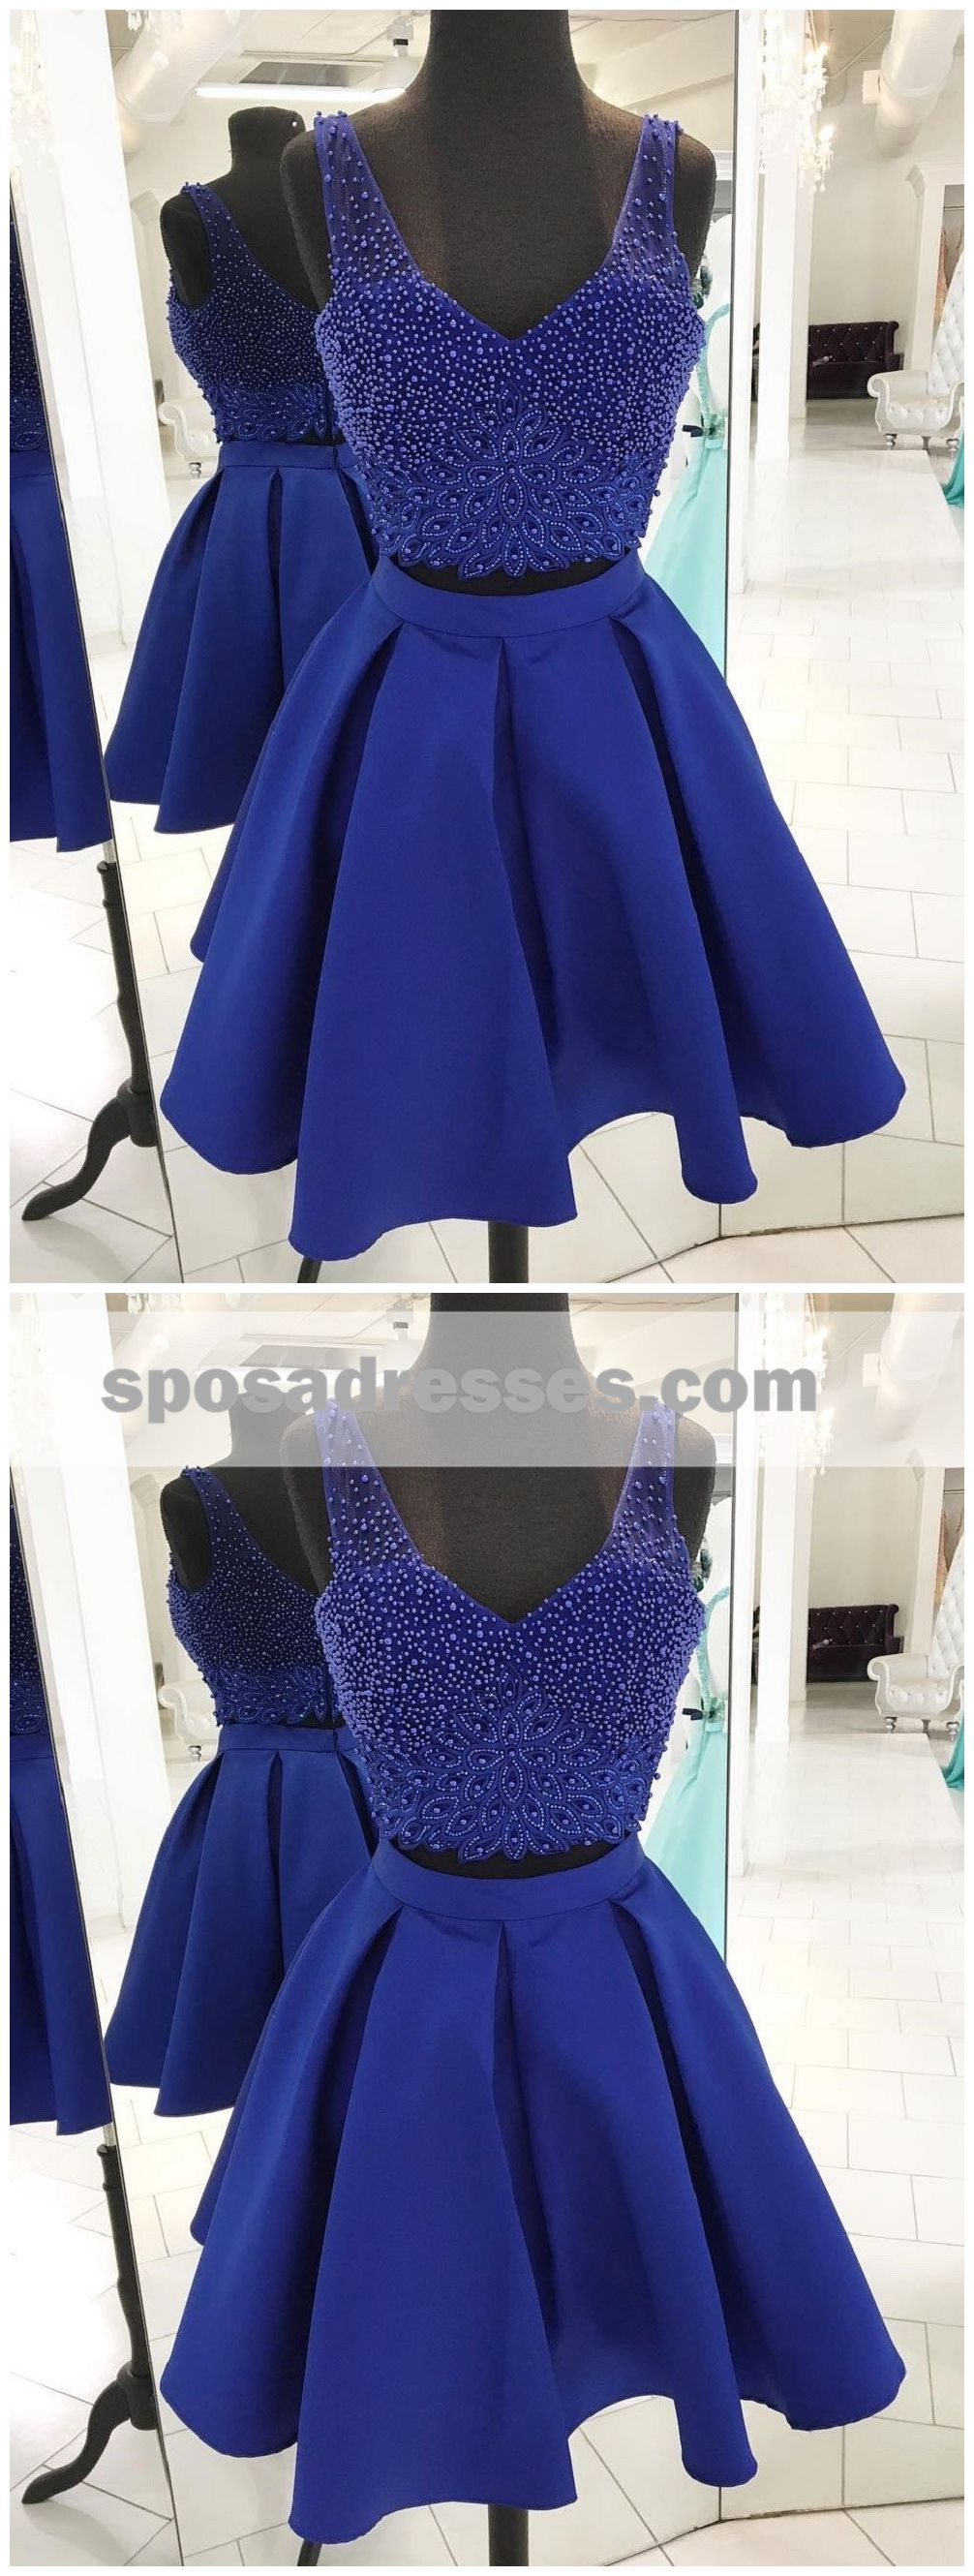 V neck beaded royal blue two piece homecoming dresses cm